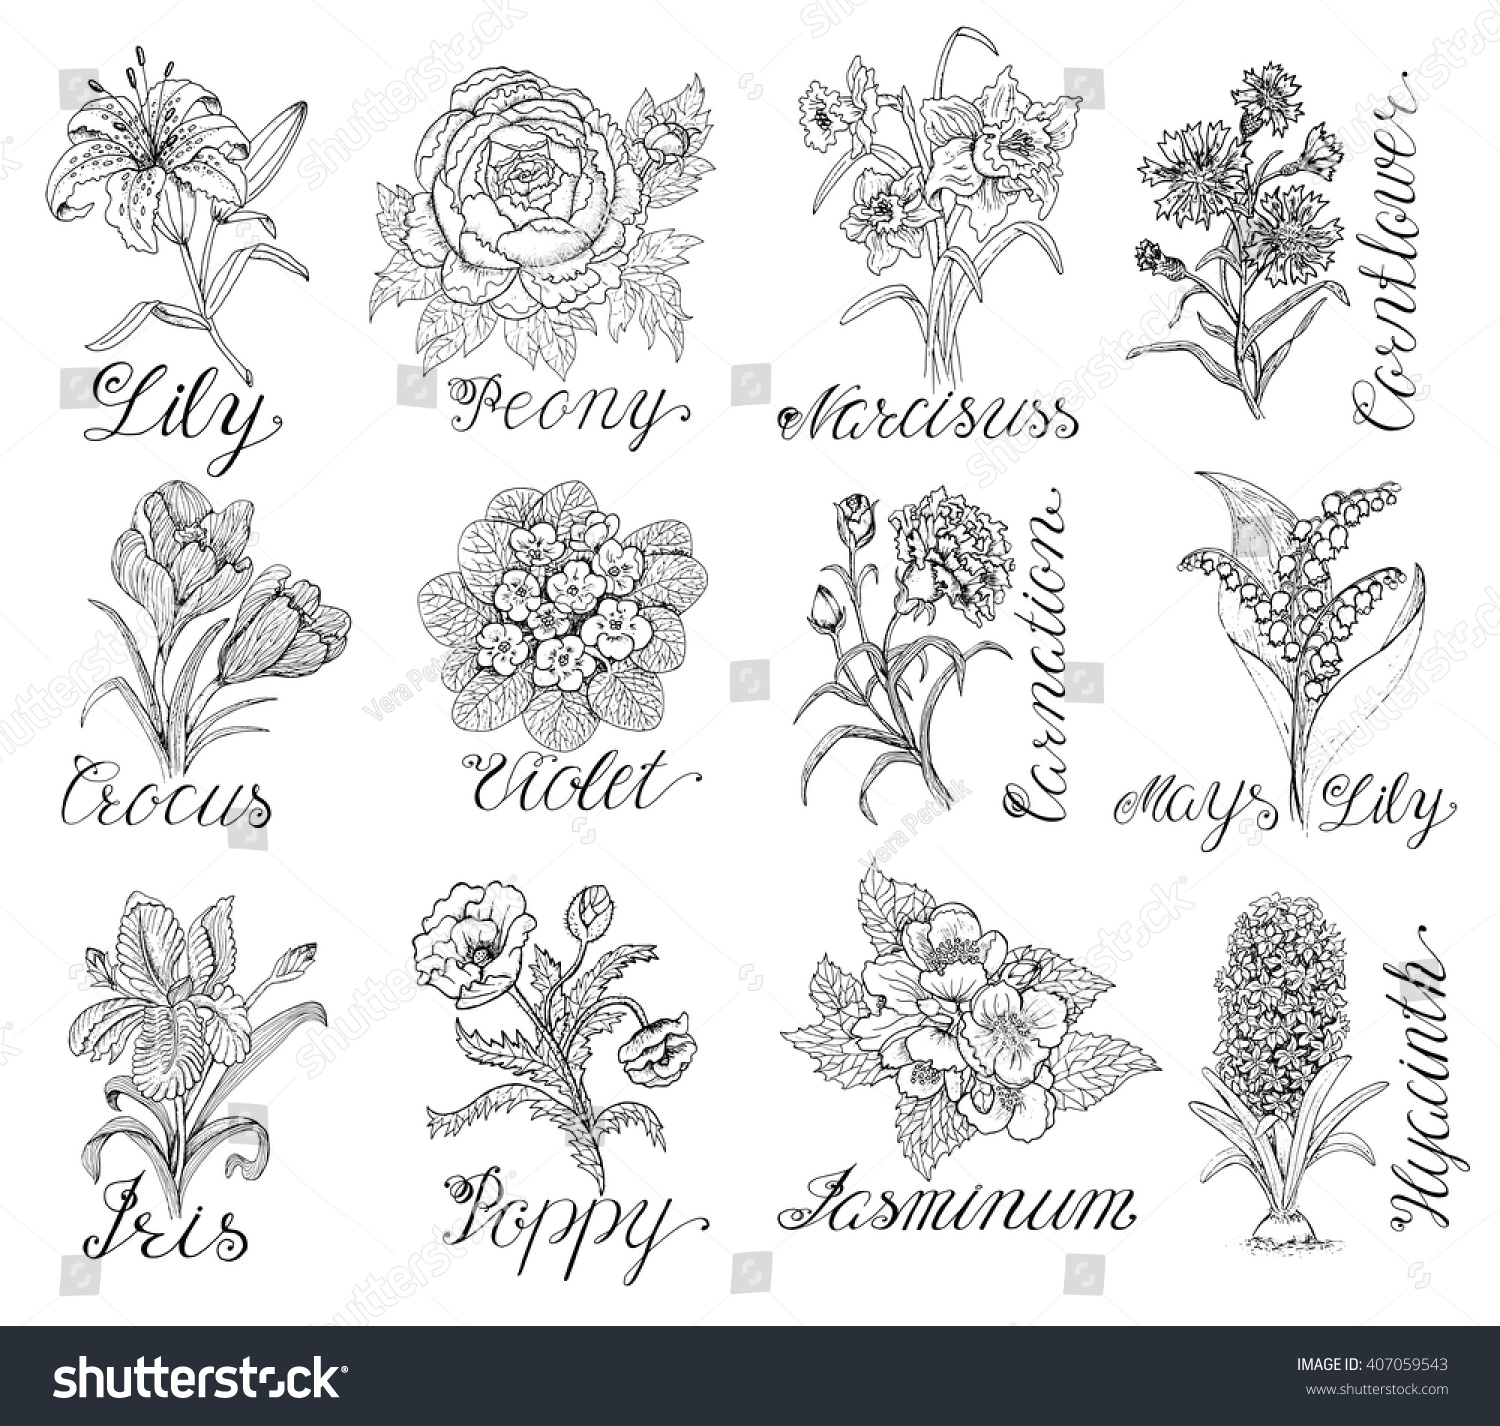 Line Drawing Violet : Set hand drawn graphic flowers lily vectores en stock